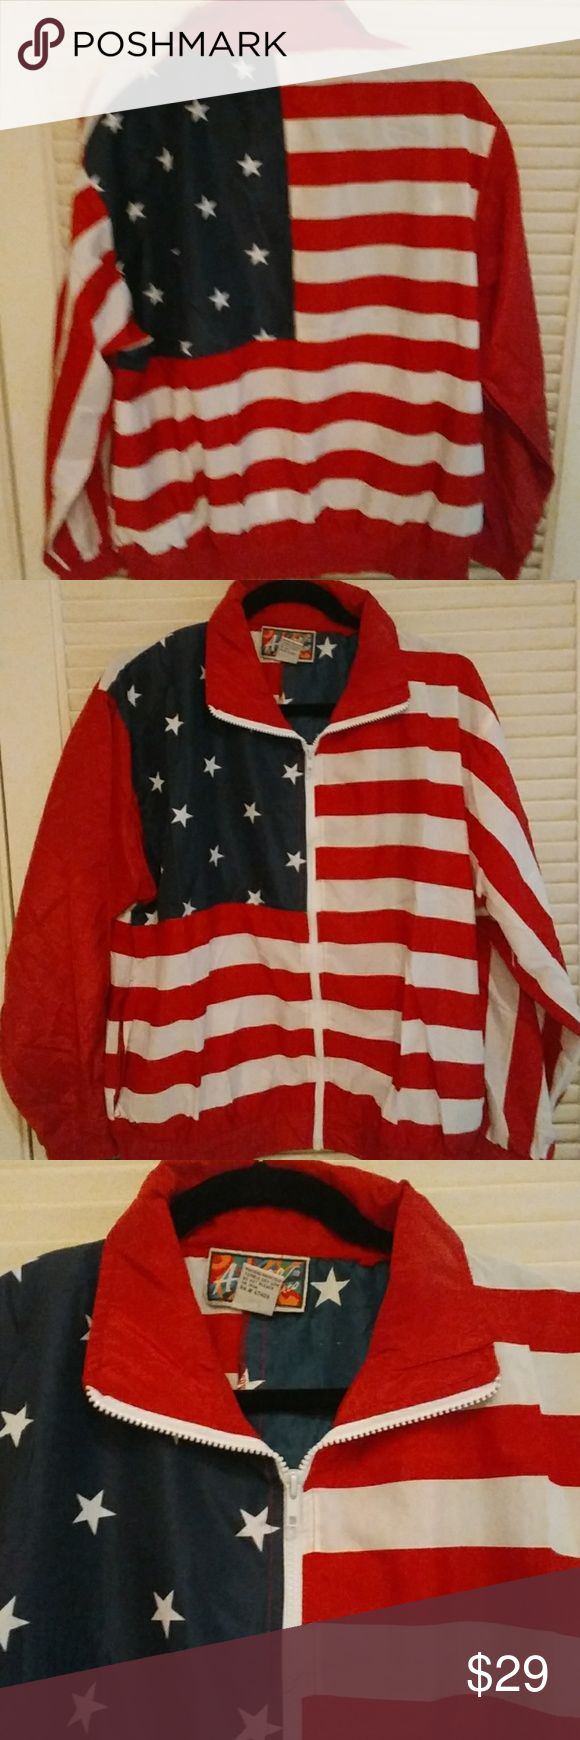 Presidents Day Sale!! New with tag fit small or Medium size flag jacket Jackets & Coats